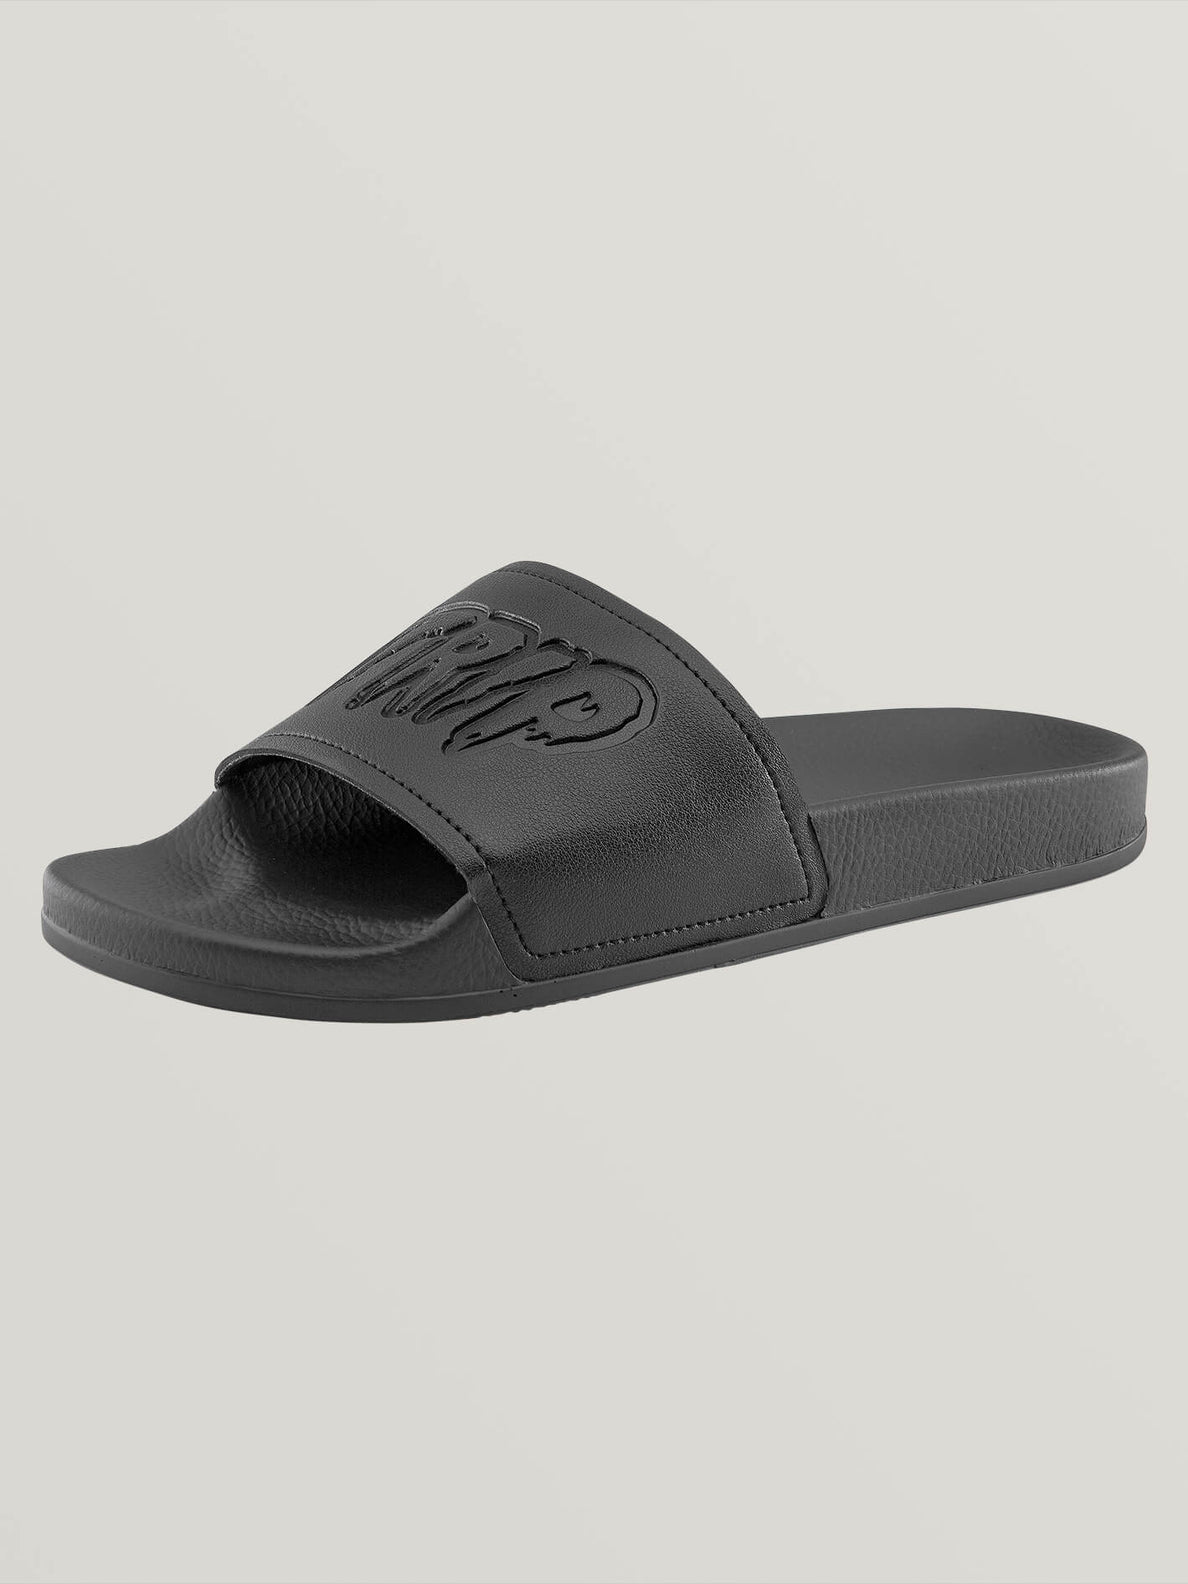 Don't Trip Slides In Blackout, Back View